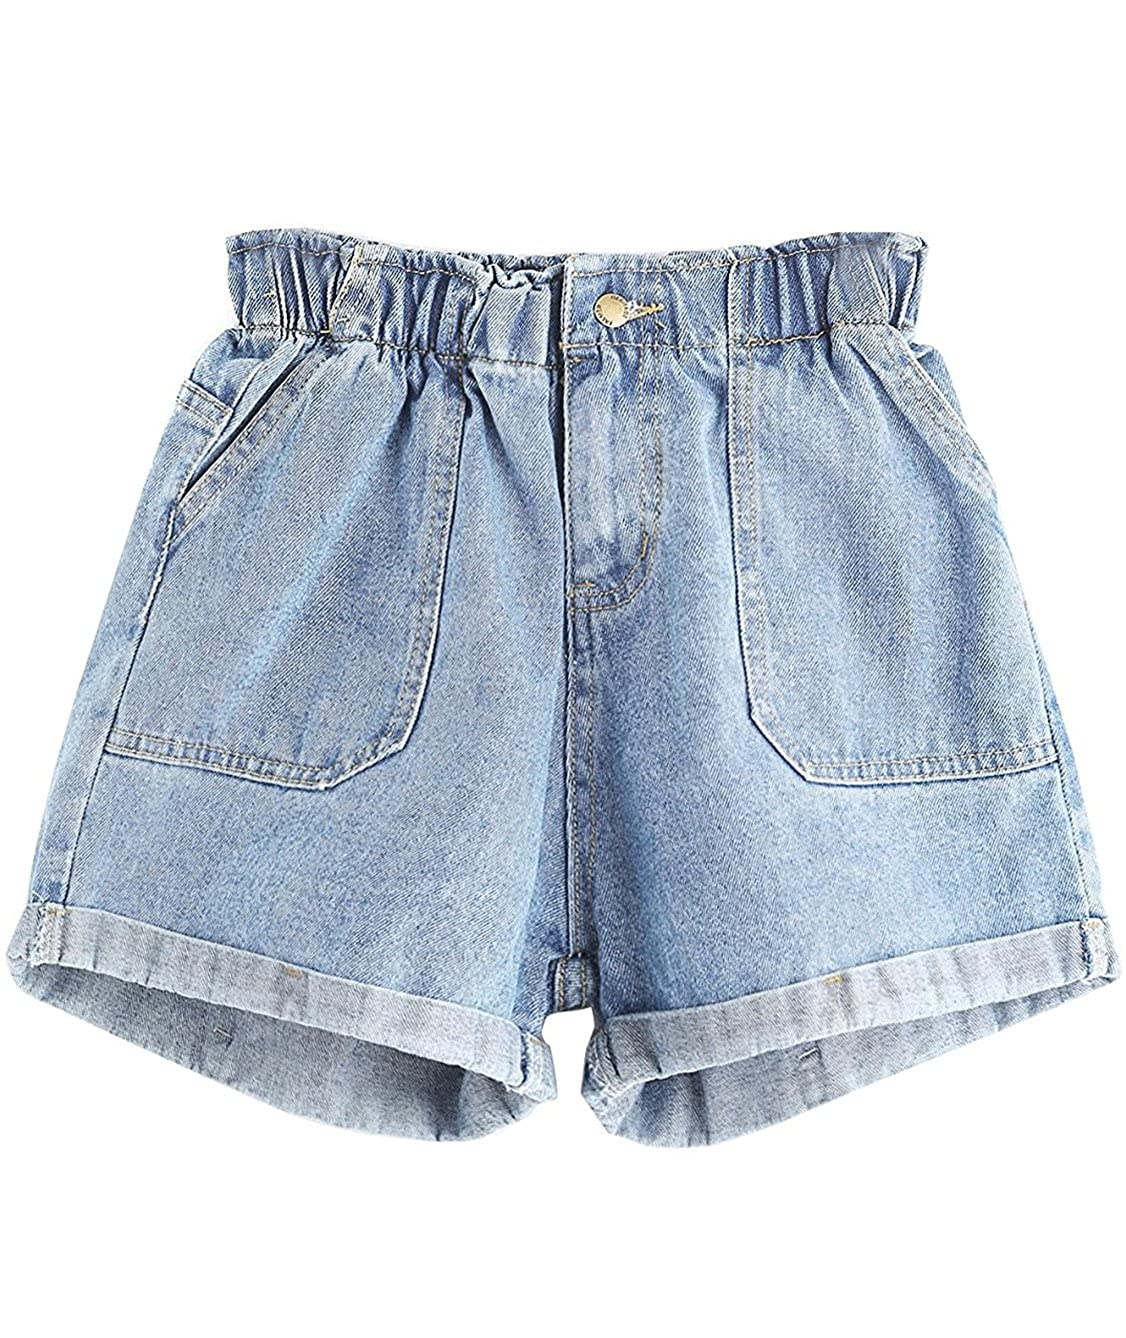 Floerns Womens' Elastic Waist Summer Denim Shorts Jeans